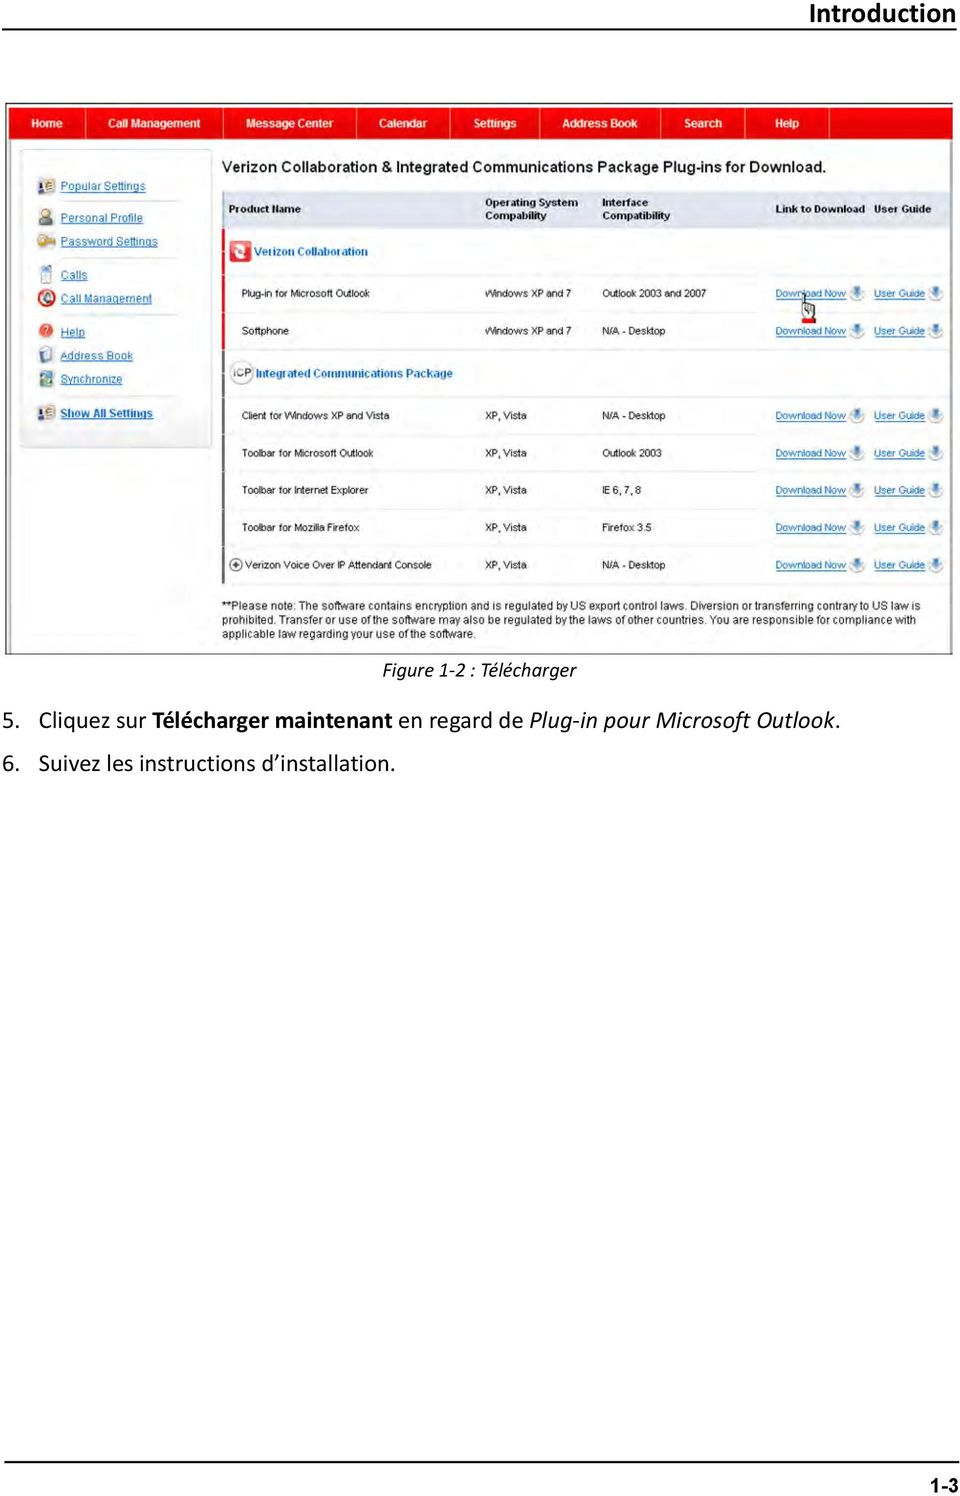 regard de Plug-in pour Microsoft Outlook.